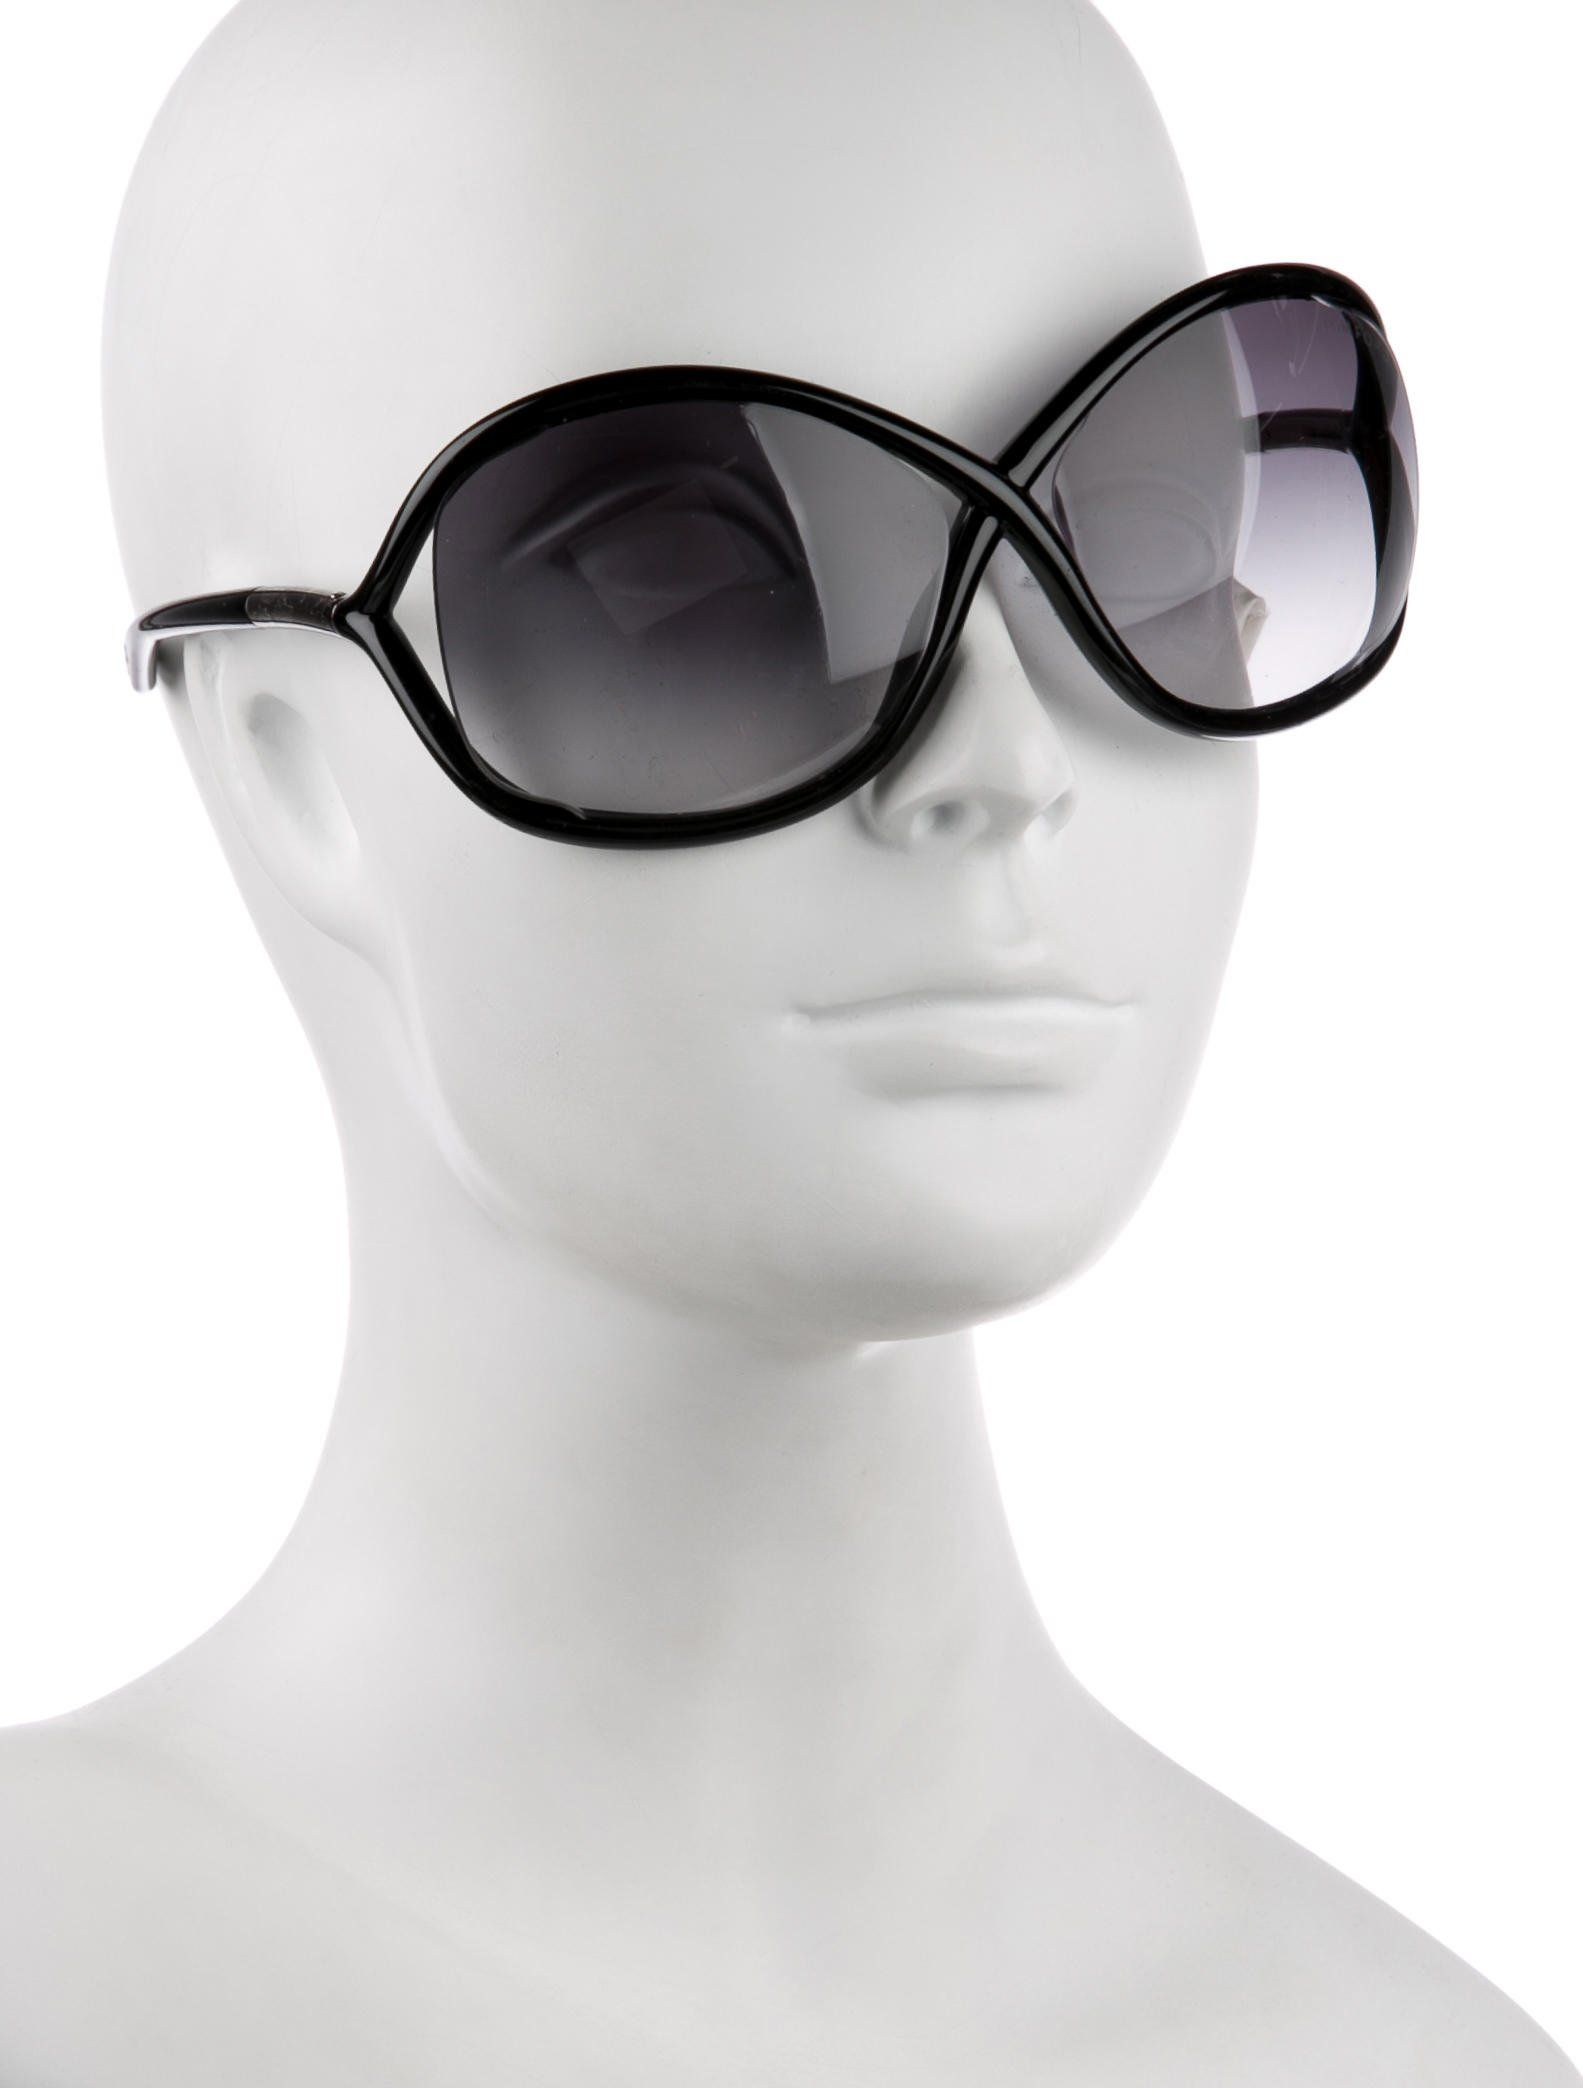 38c0d5255d50 Black acetate Tom Ford Whitney sunglasses with black gradient lenses at oversize  butterfly frames and silver-tone logo accents at temple tips. Includes case